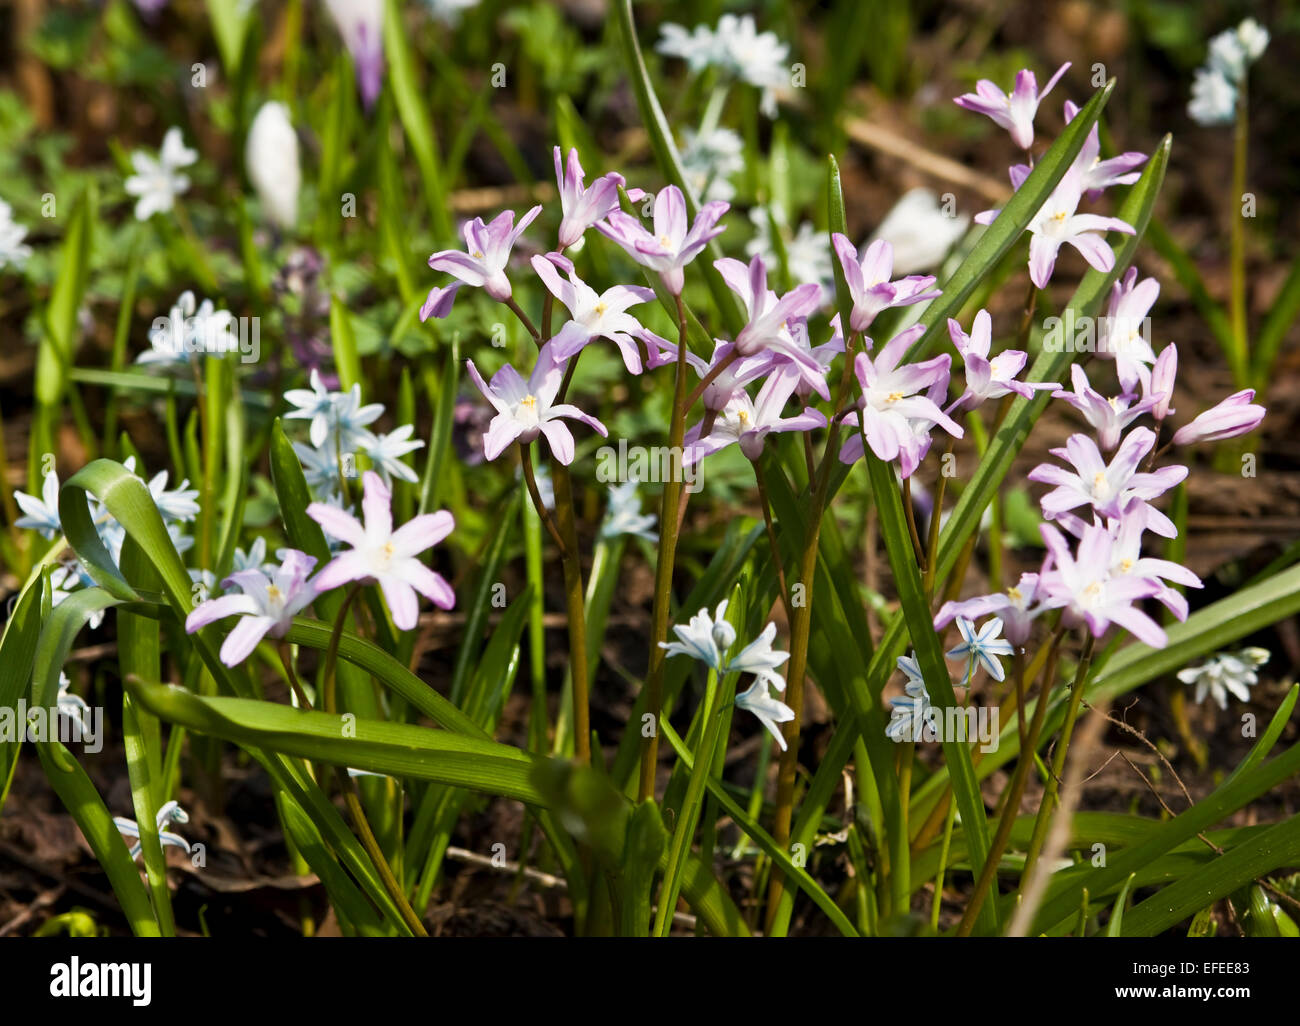 Wild First Spring Flowers Puschkinia Scilloides White Colour Stock